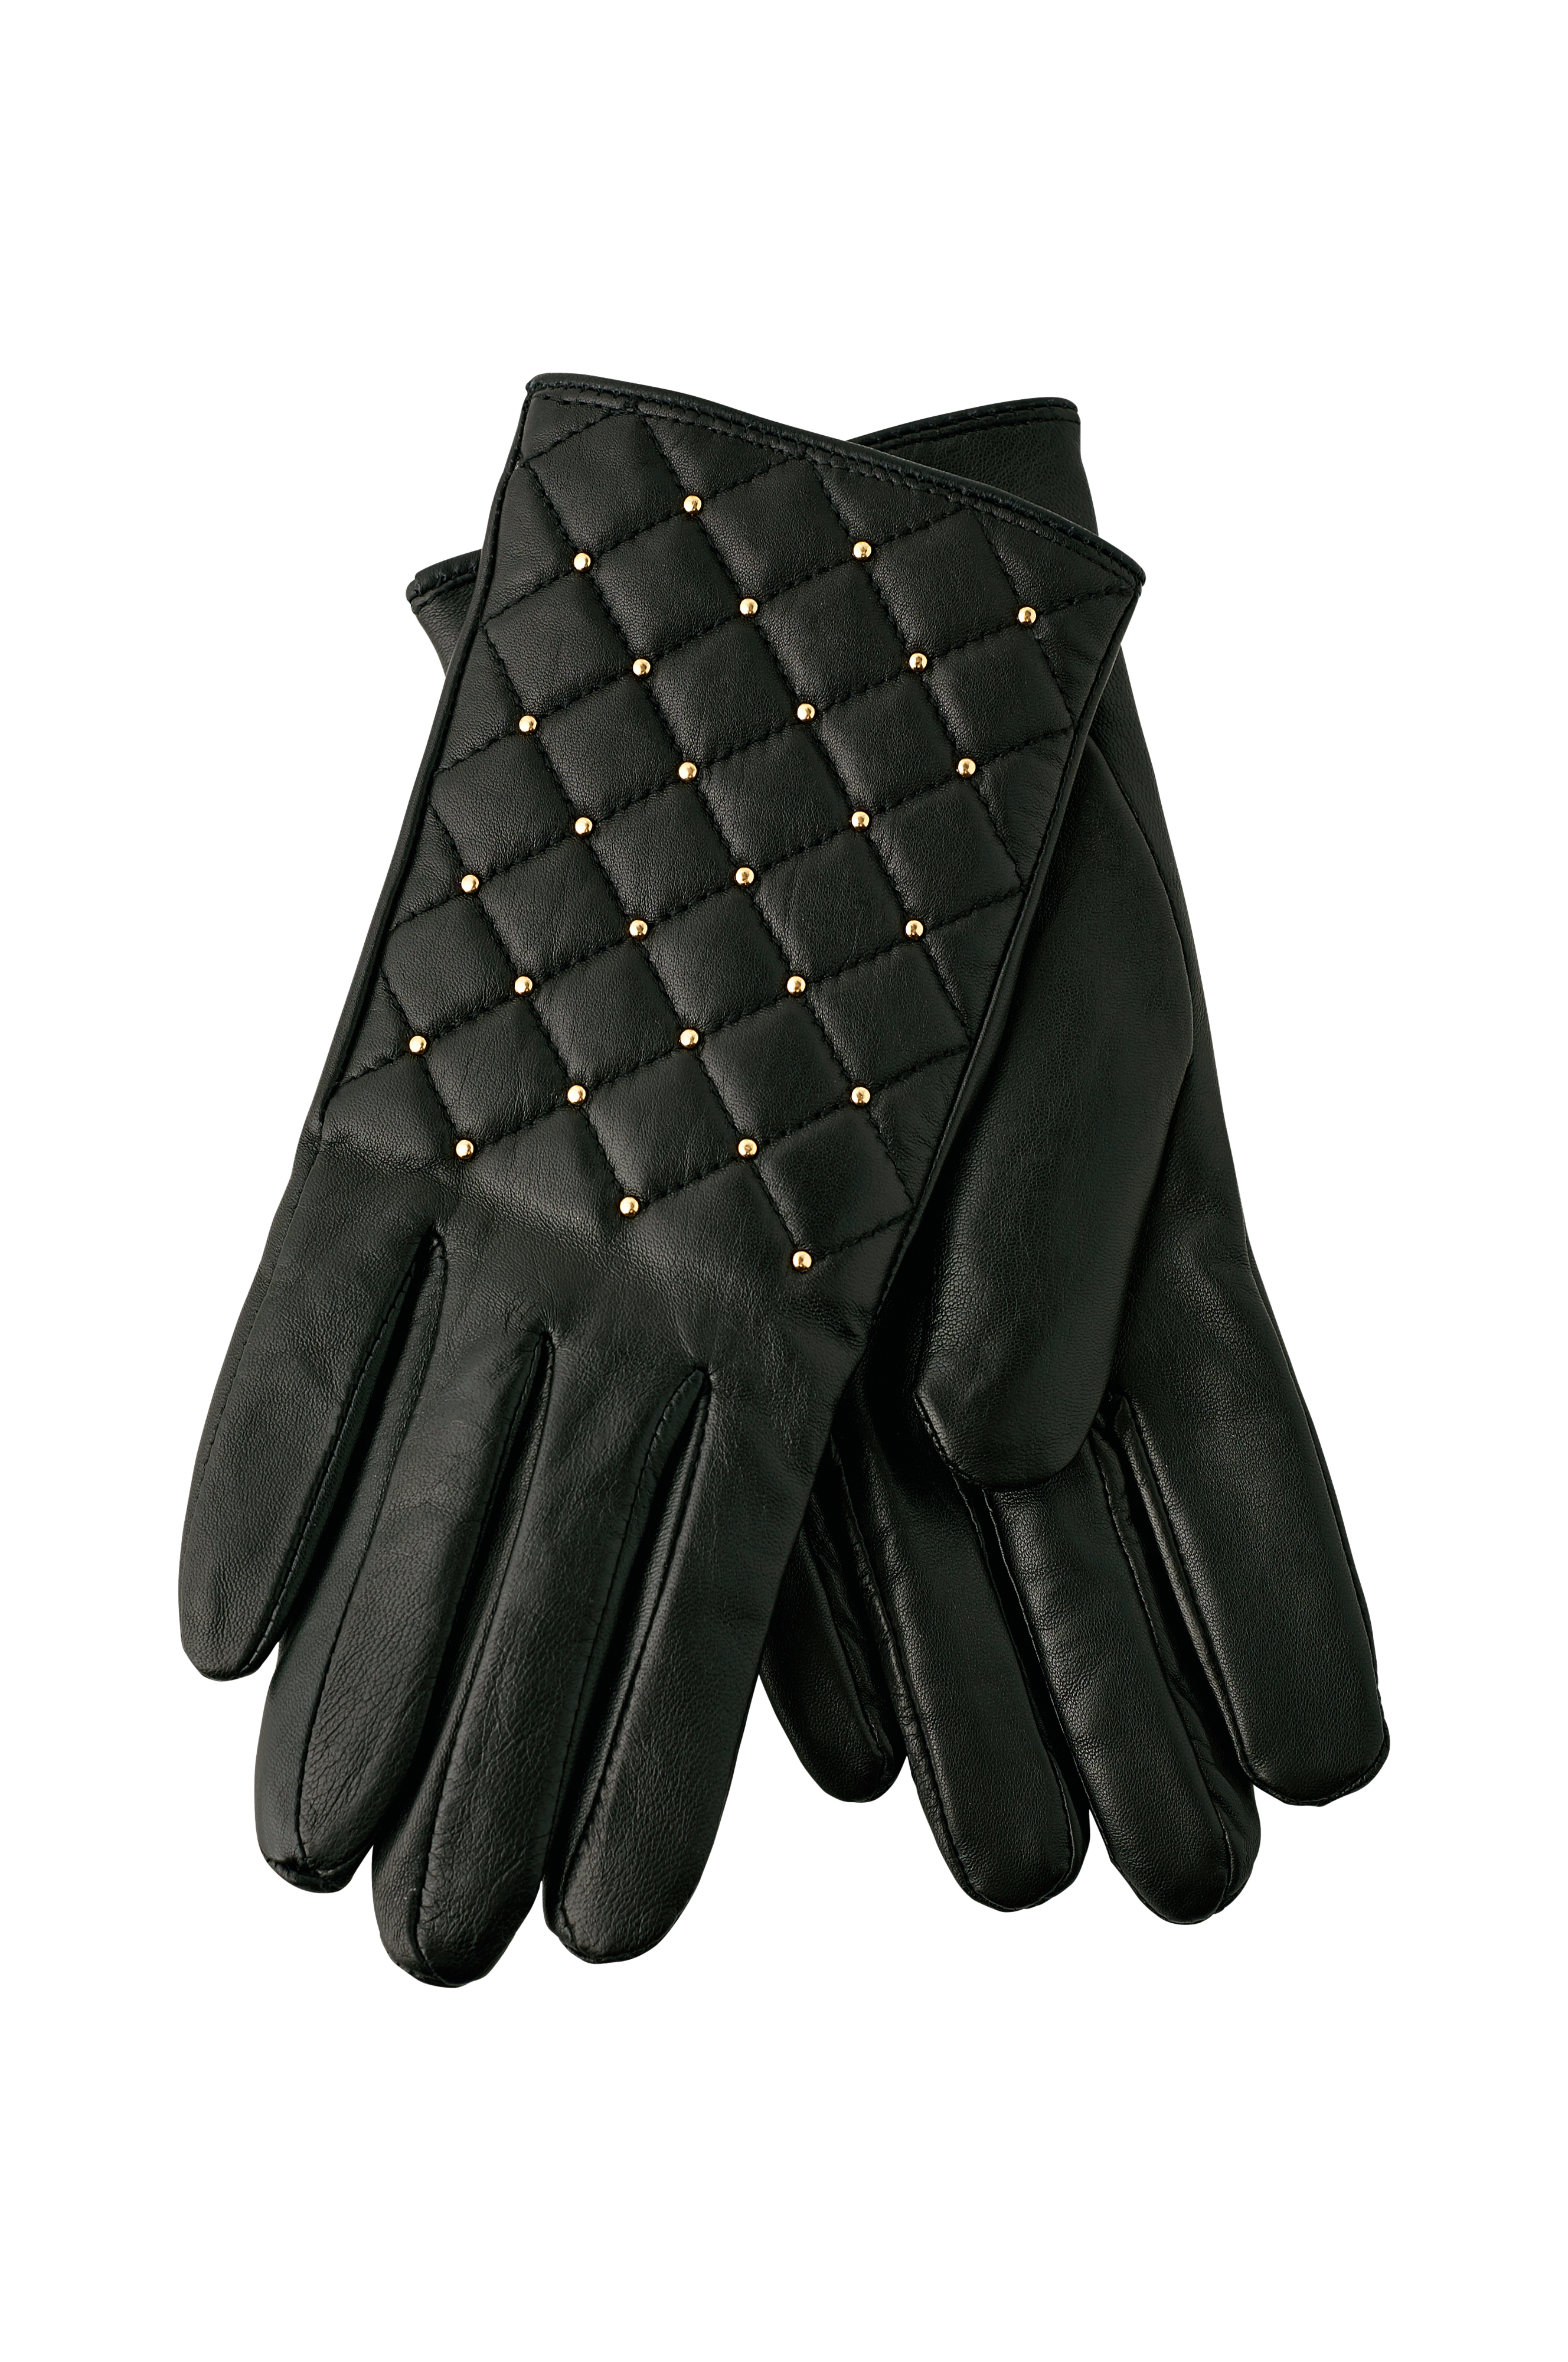 Beautiful quilted leather gloves from DAY